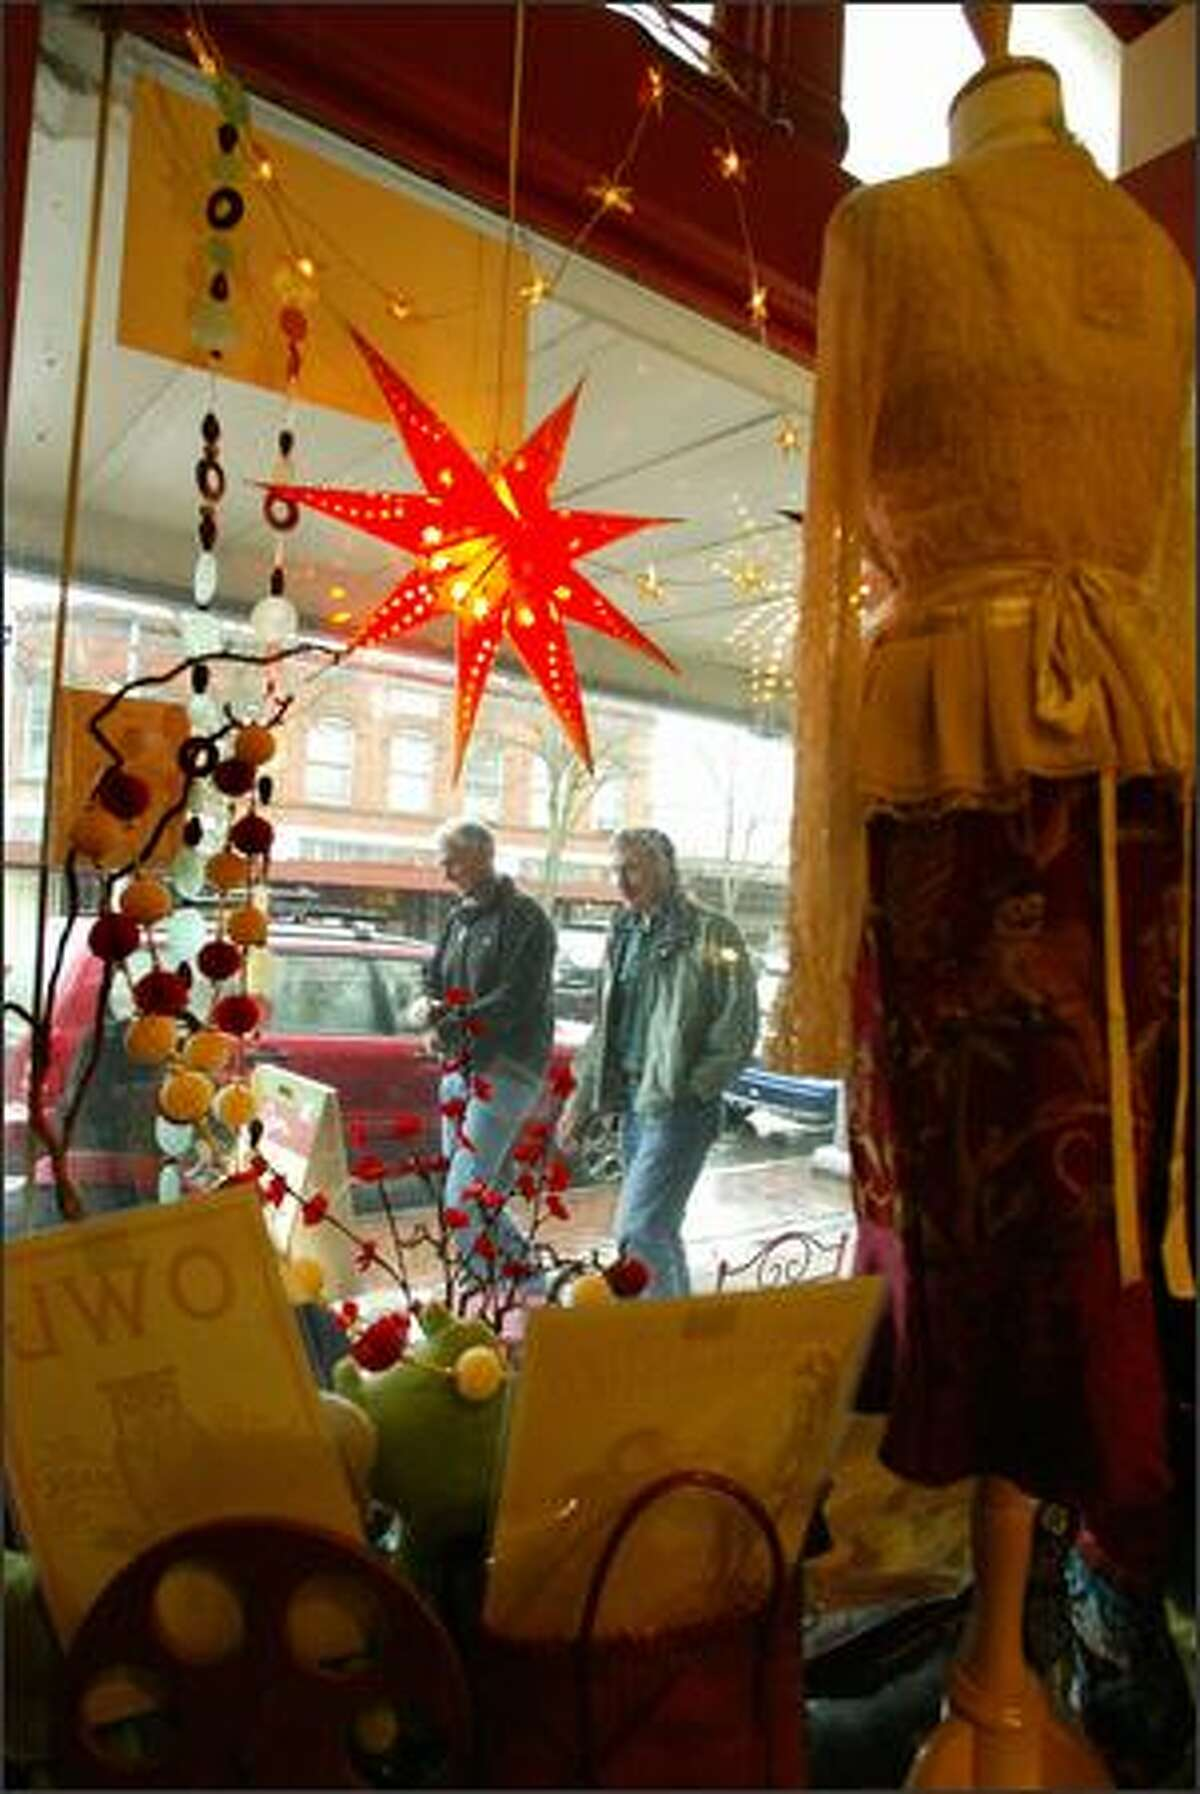 Andaluz is a three year old shop in Columbia City offering an eclectic selection of clothing, gifts and jewelry.